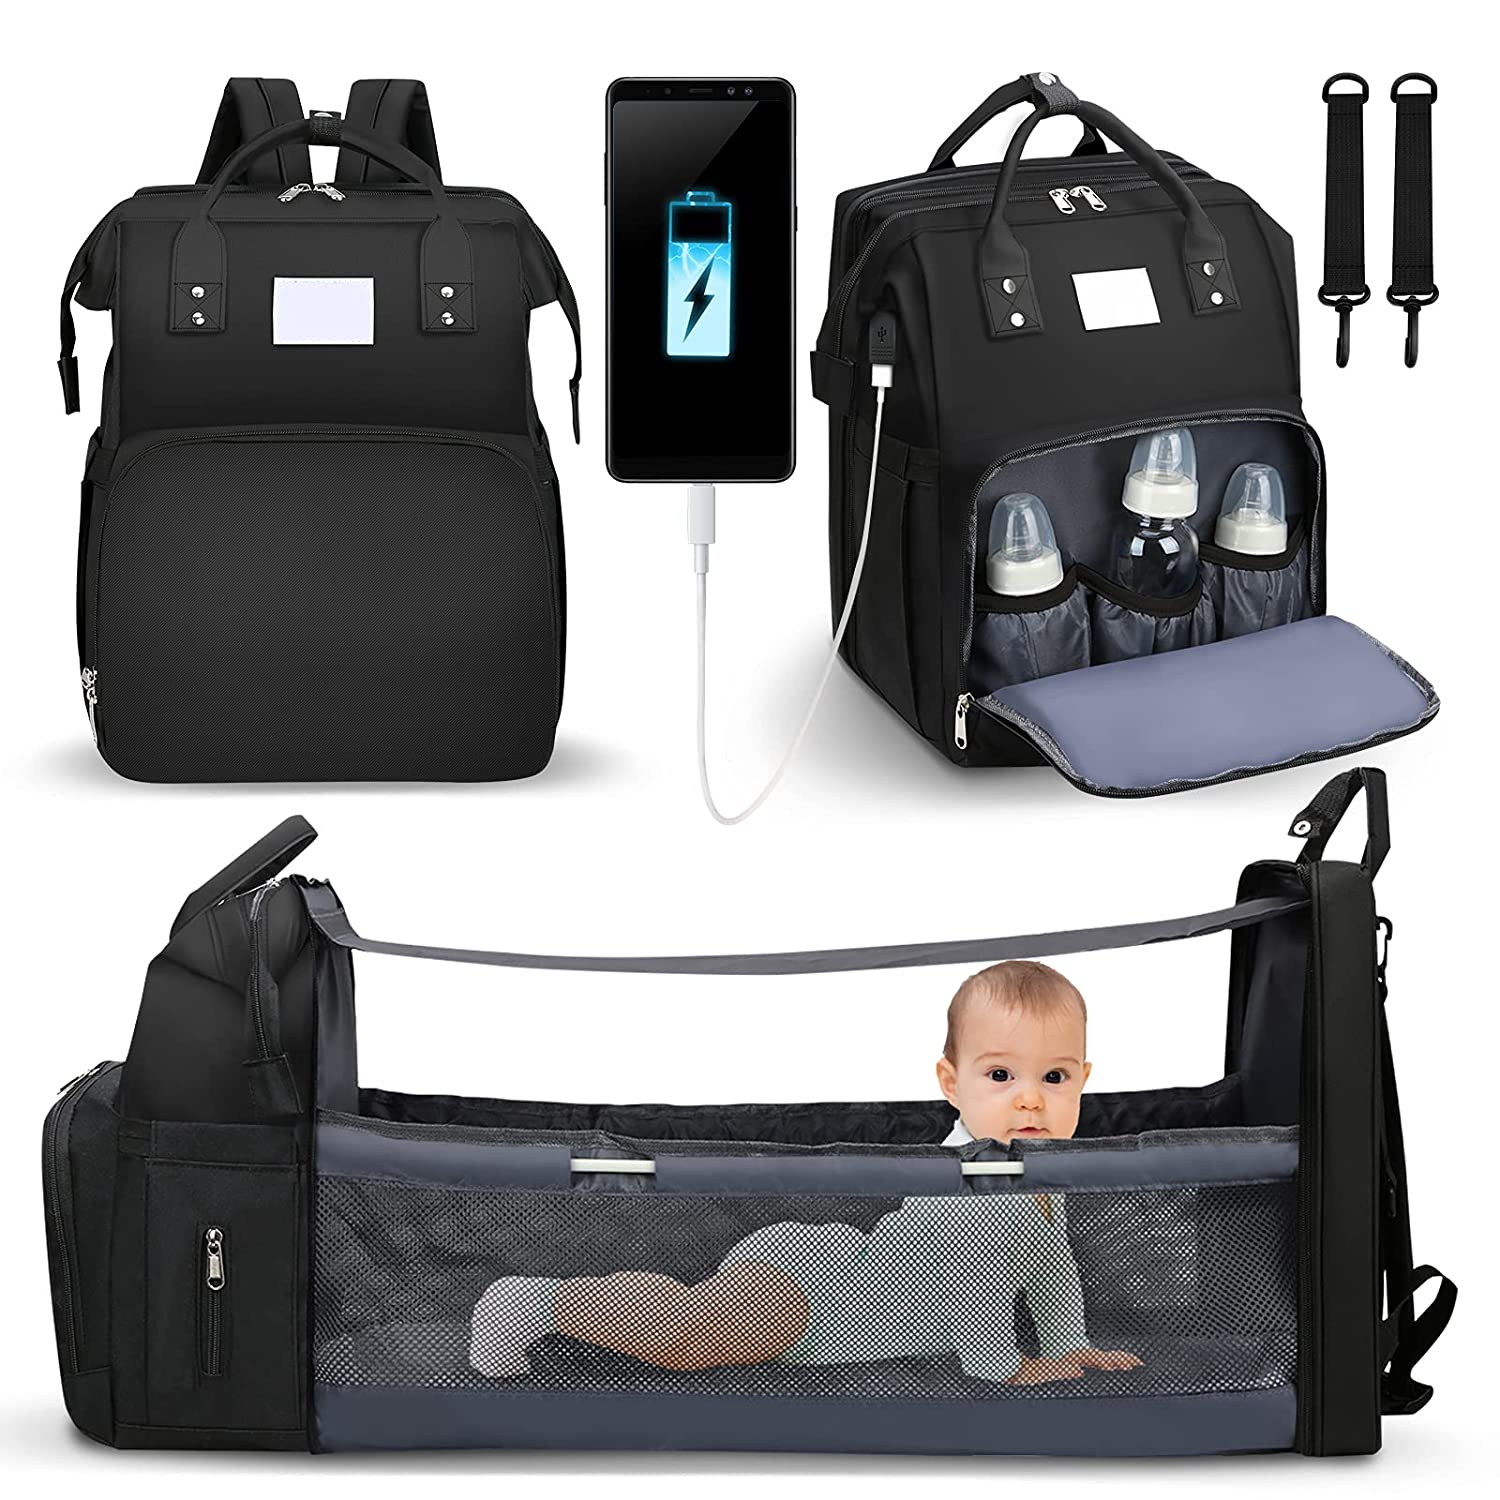 3-in-1 Diaper Bag Backpack, Diaper Bag with Changing Station, Foldable Baby Crib, Waterproof Travel Backpack with Stroller Straps,Built-in USB Charging Port & Large Capacity(Black)